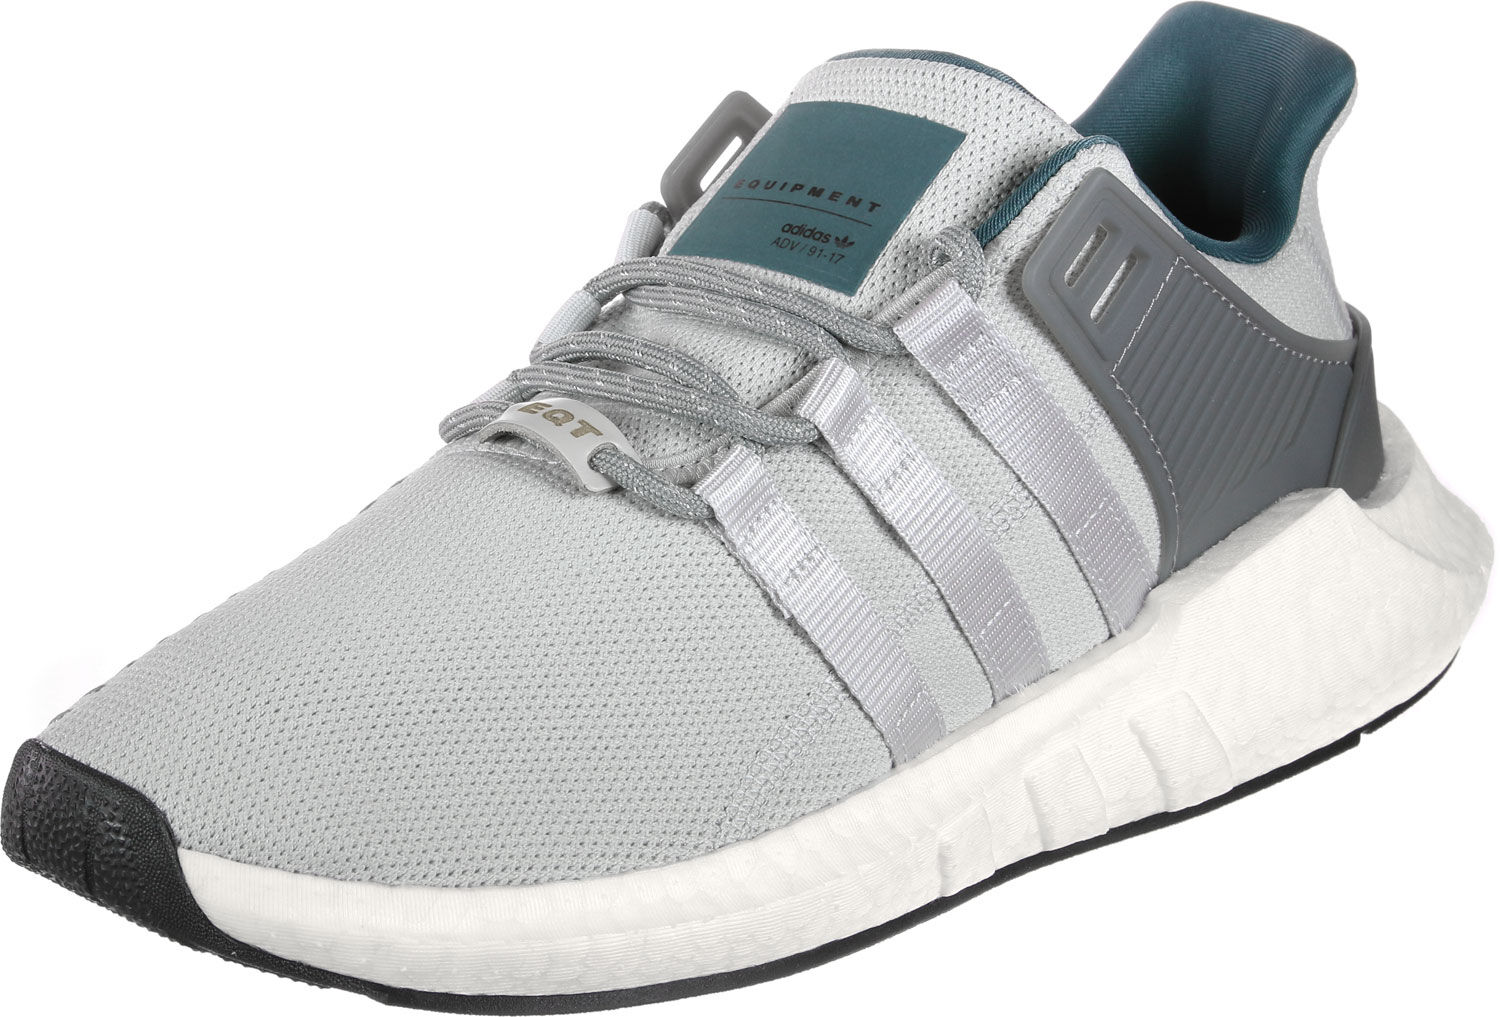 adidas EQT Support 93/17 - Sneakers Low at Stylefile